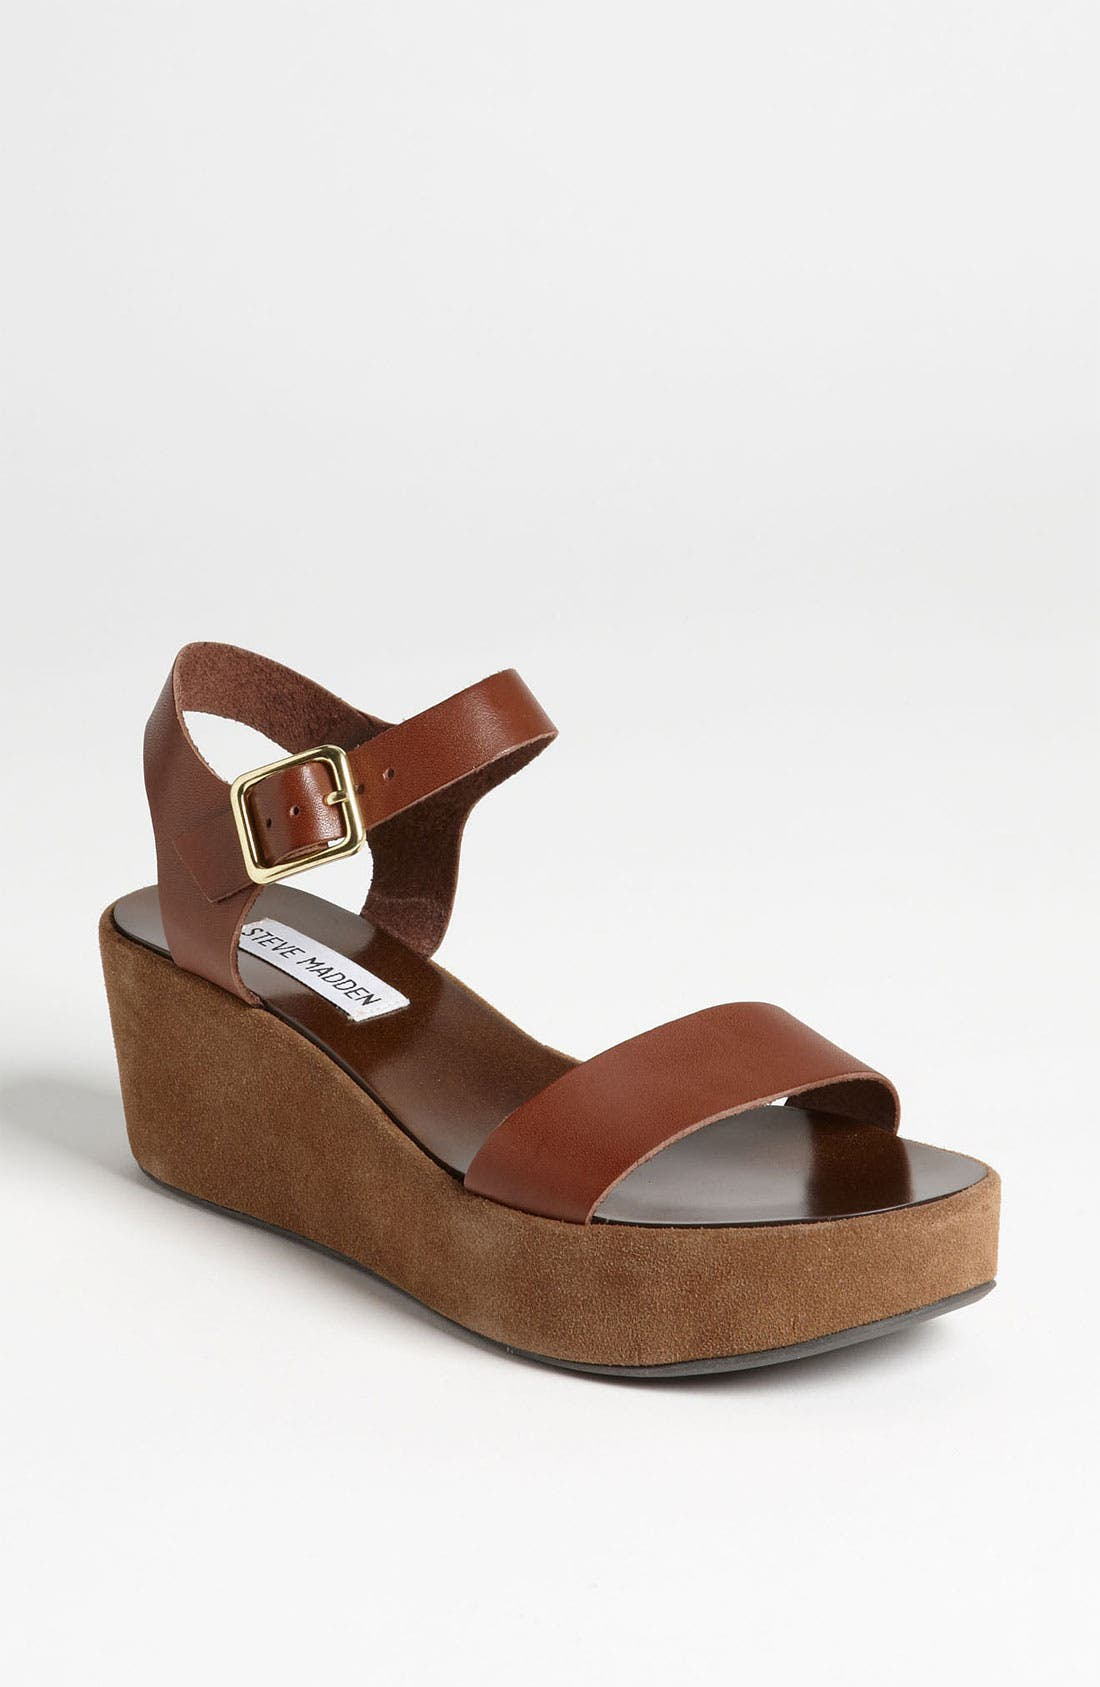 Alternate Image 1 Selected - Steve Madden 'Alisse' Sandal